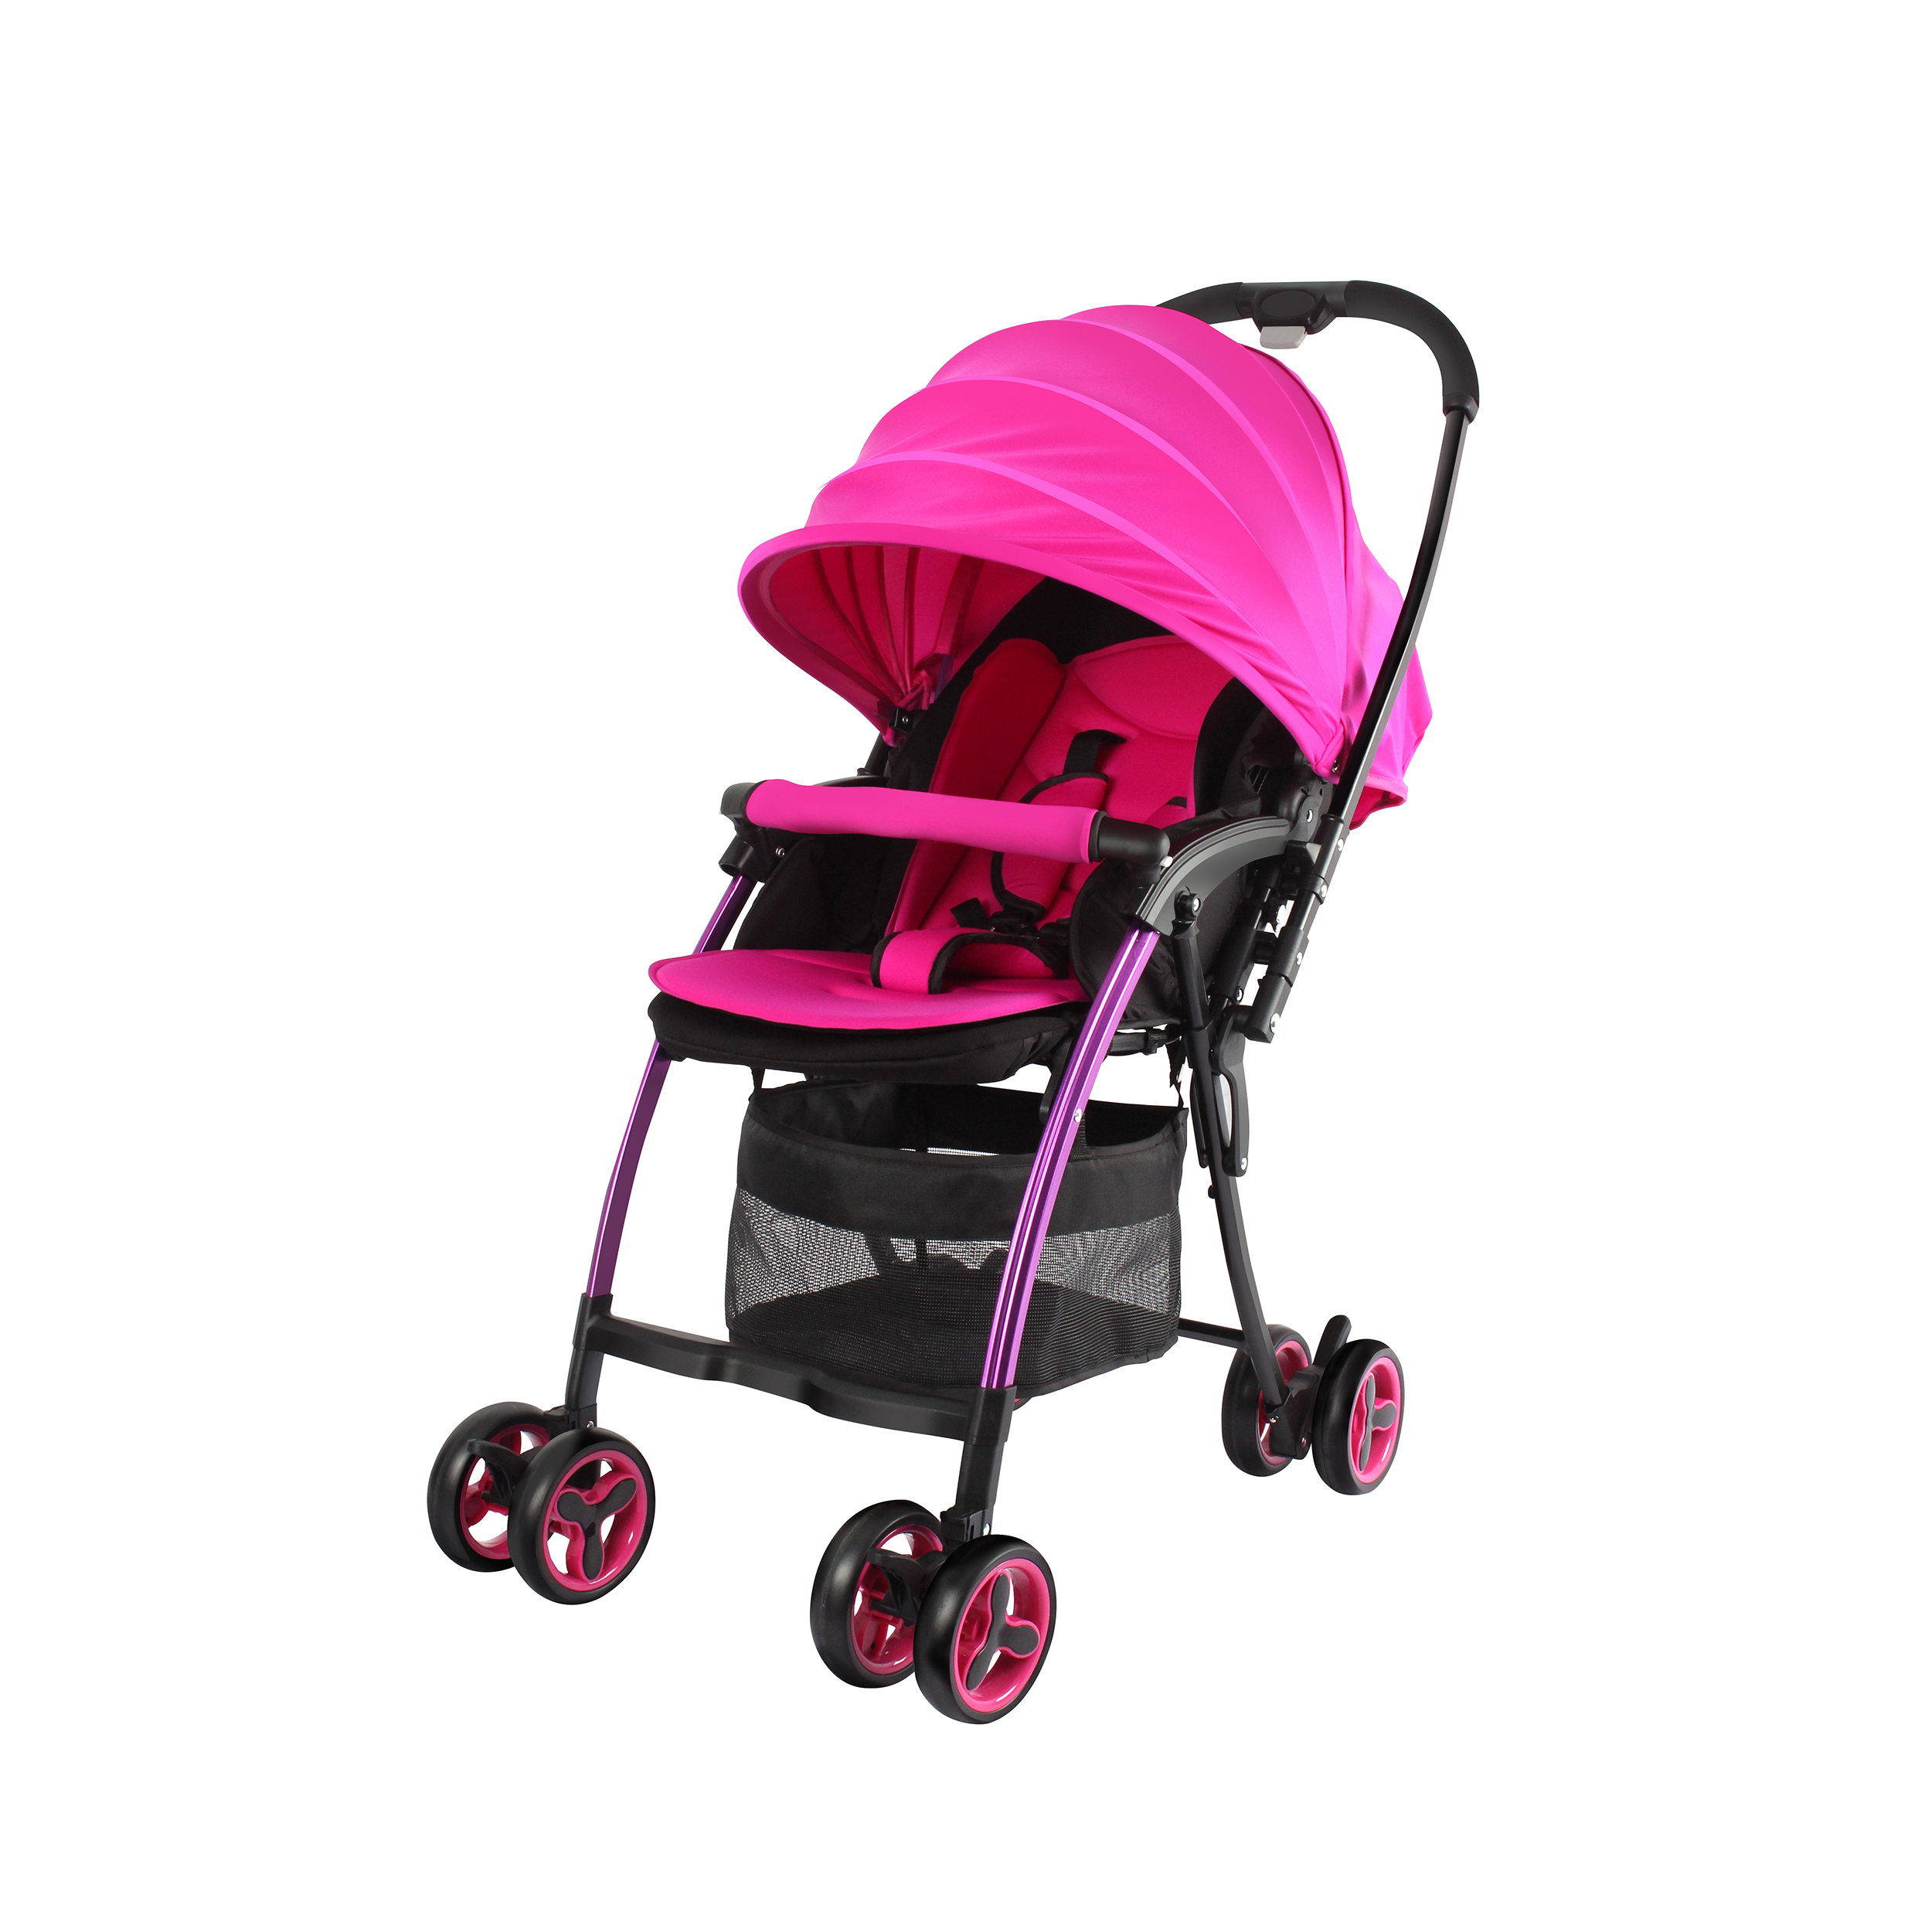 NANO Ultralight stroller with reversible handle - Pink